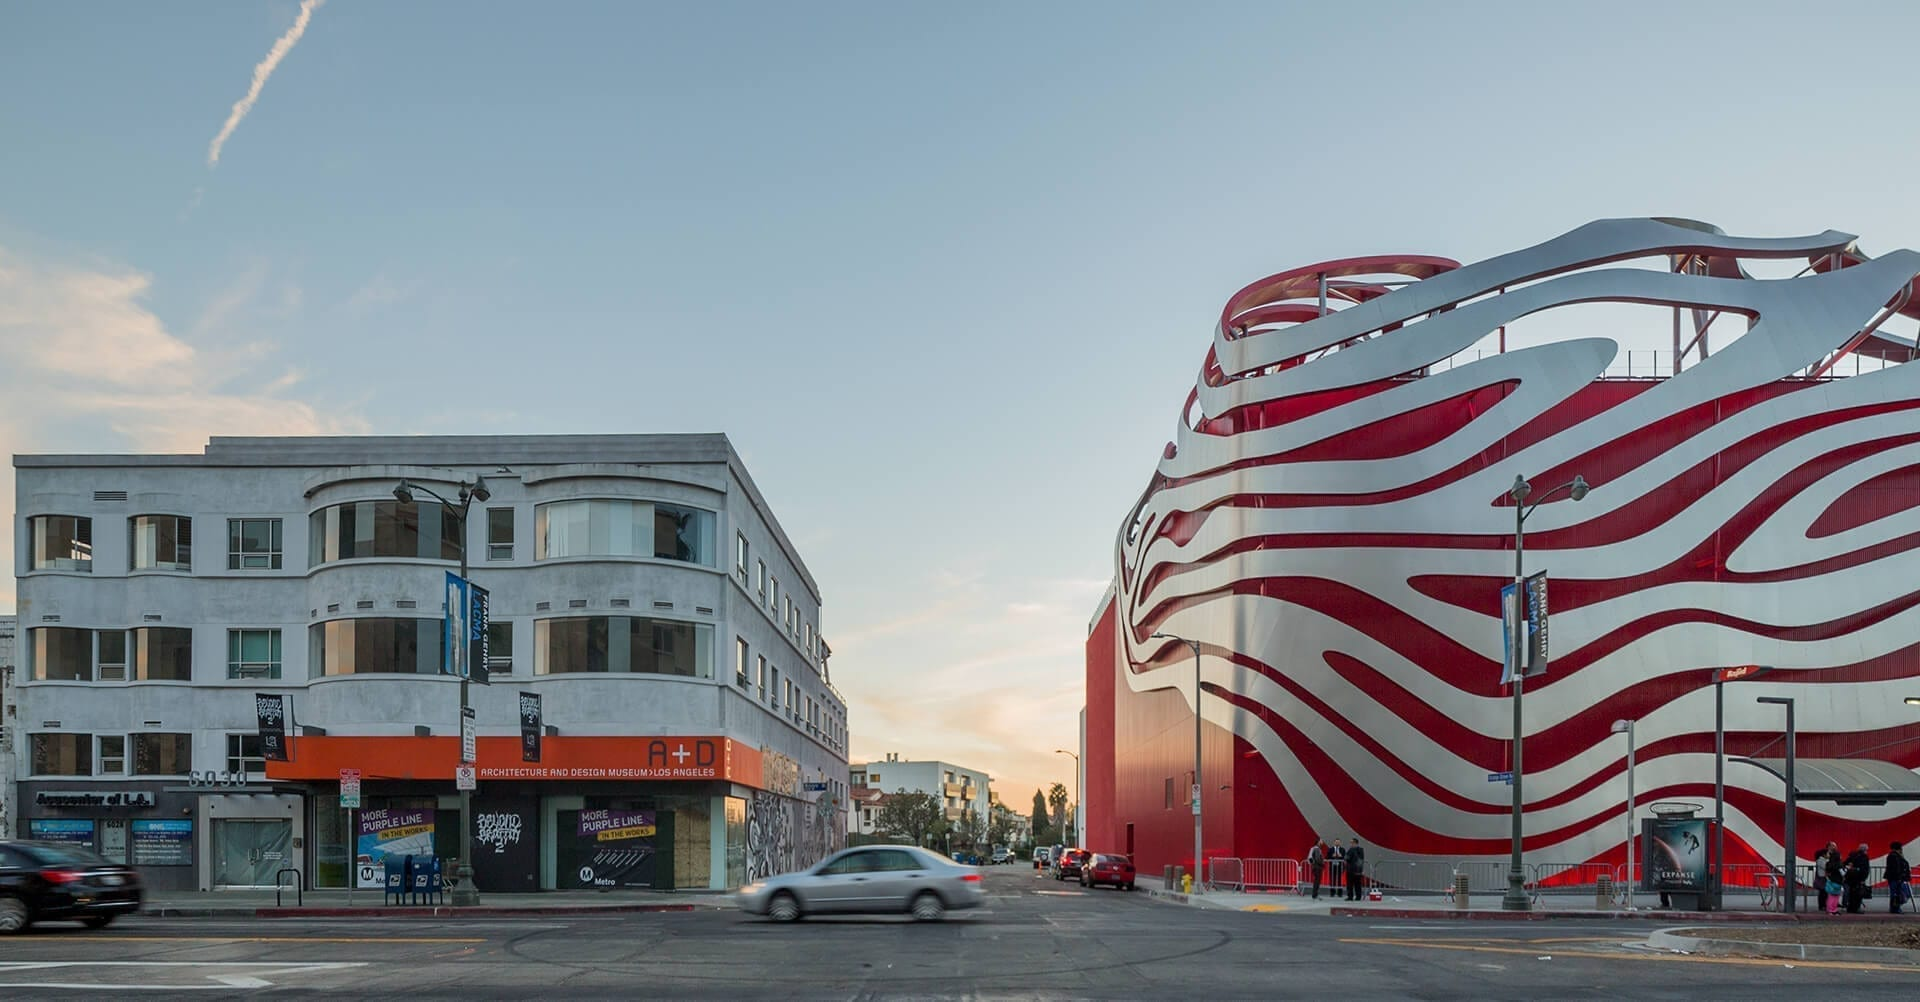 Petersen Automotive Museum in Los Angeles, California.